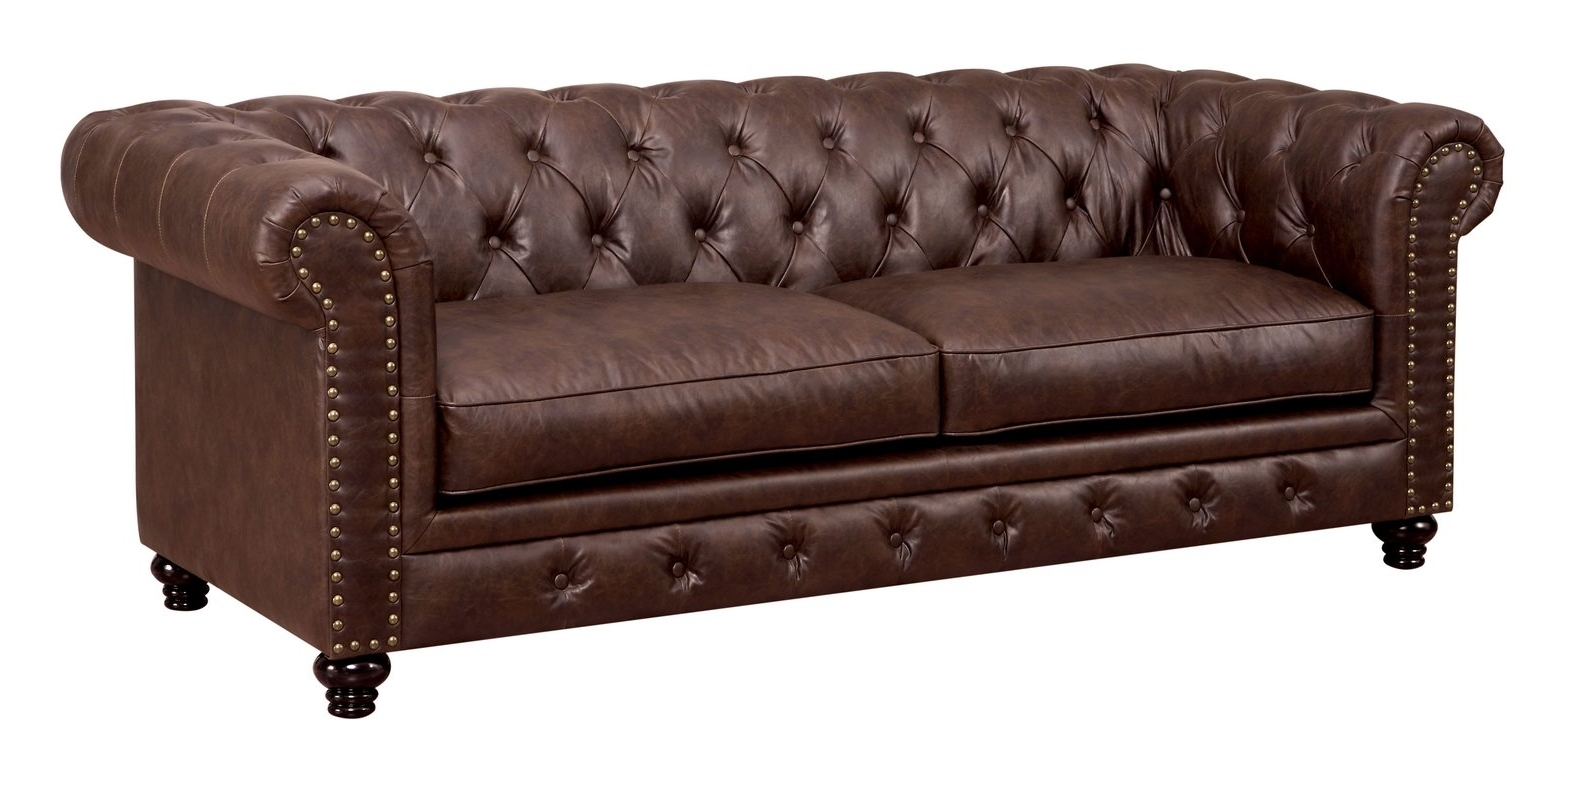 Wayfair For Chesterfield Sofas And Chairs (View 20 of 20)